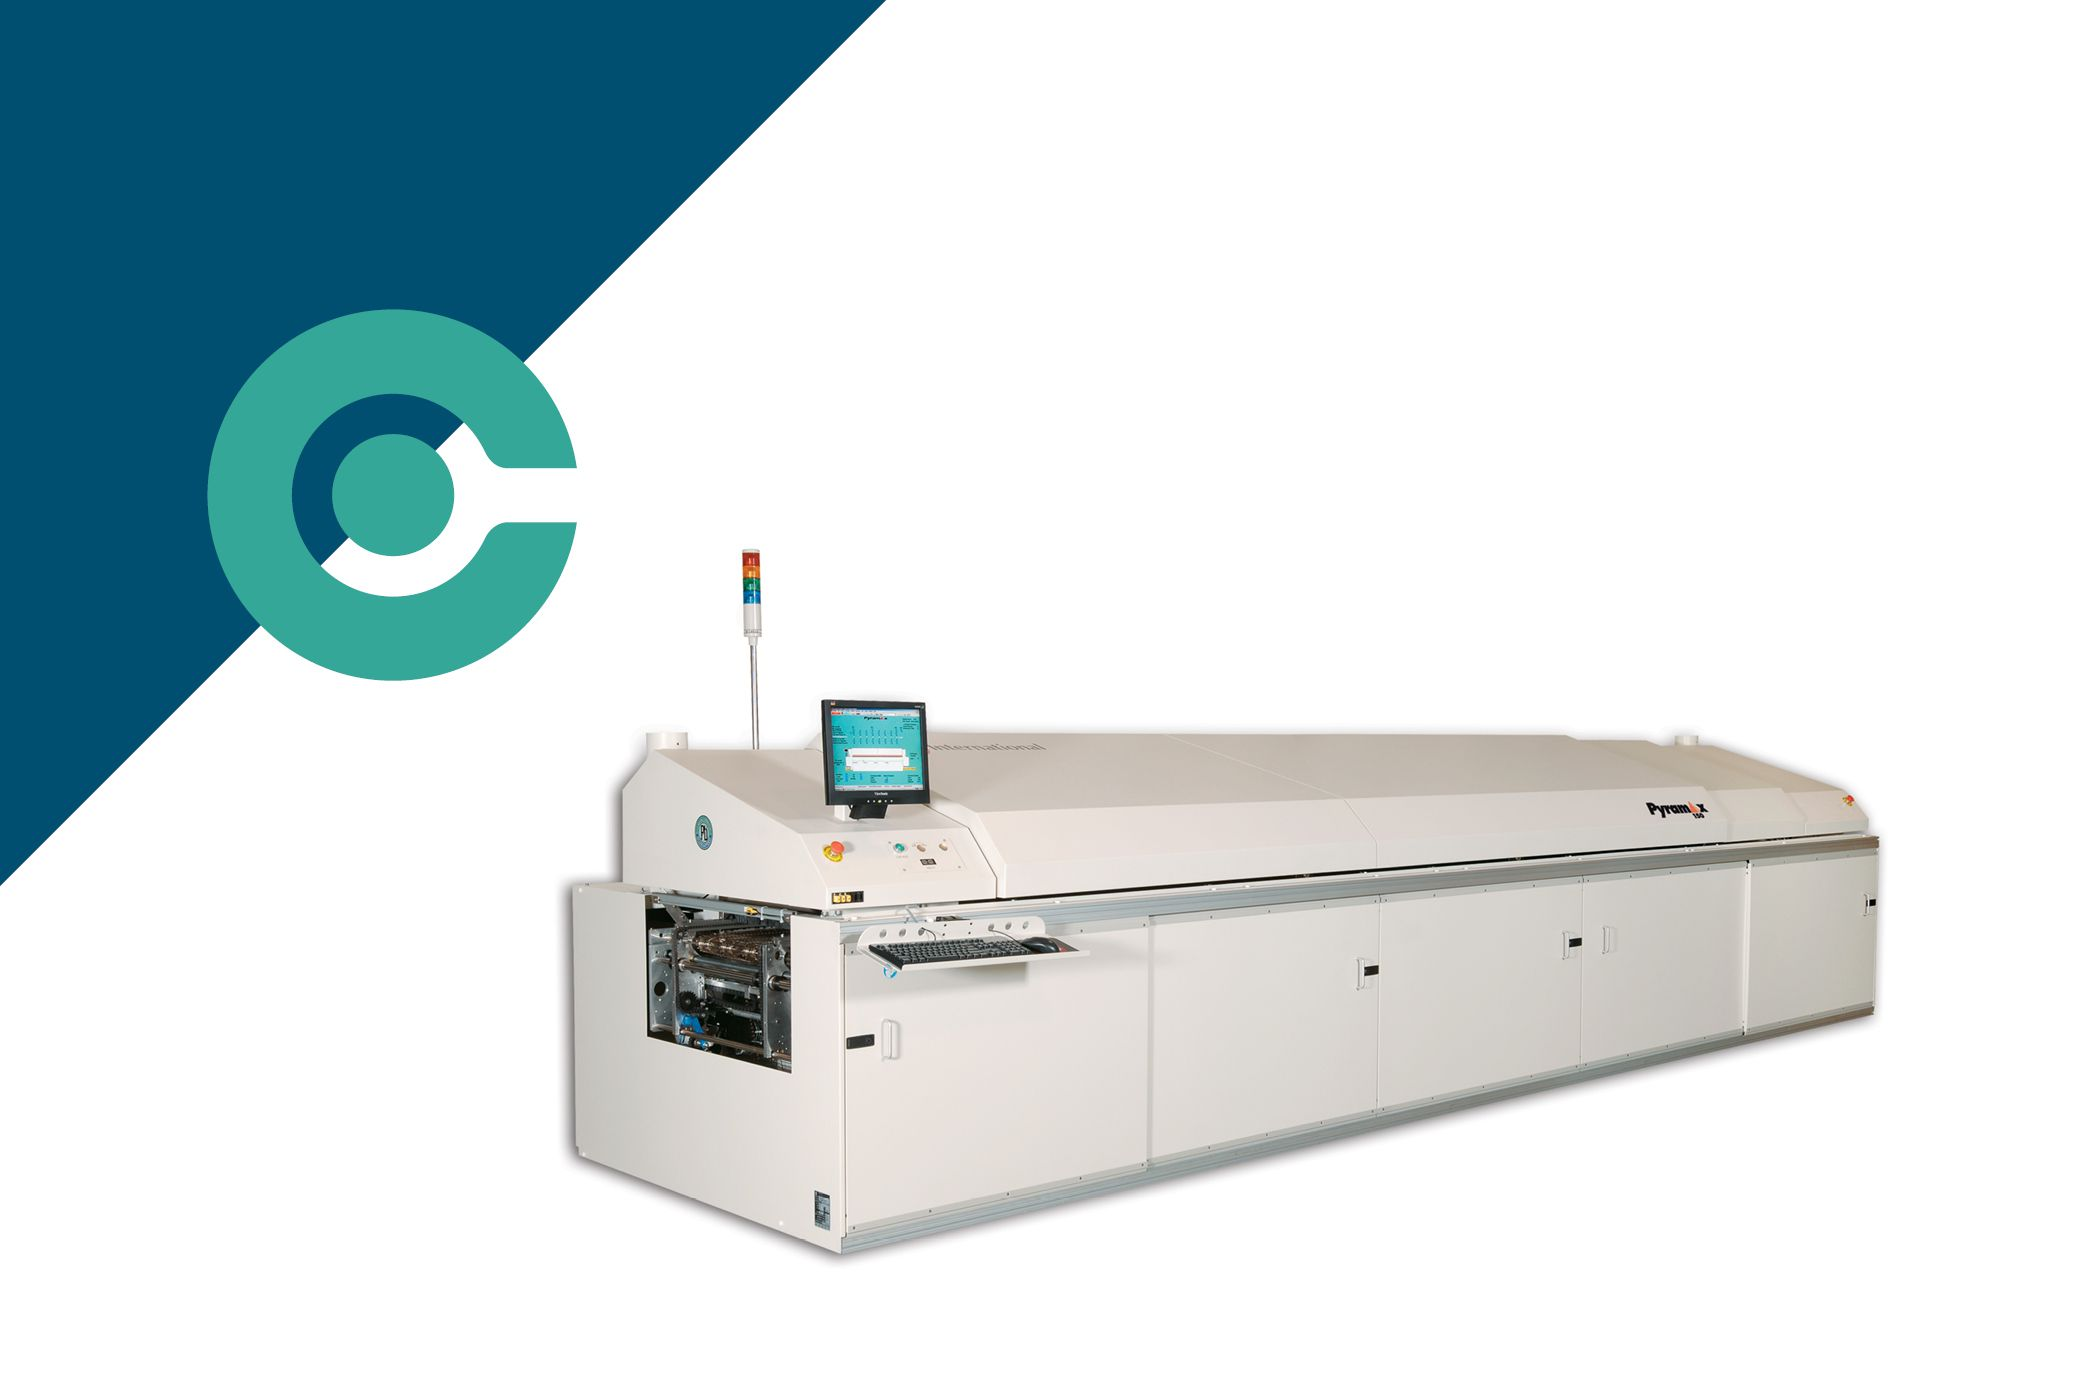 Top of the line Pyramax 150a z12 air reflow oven